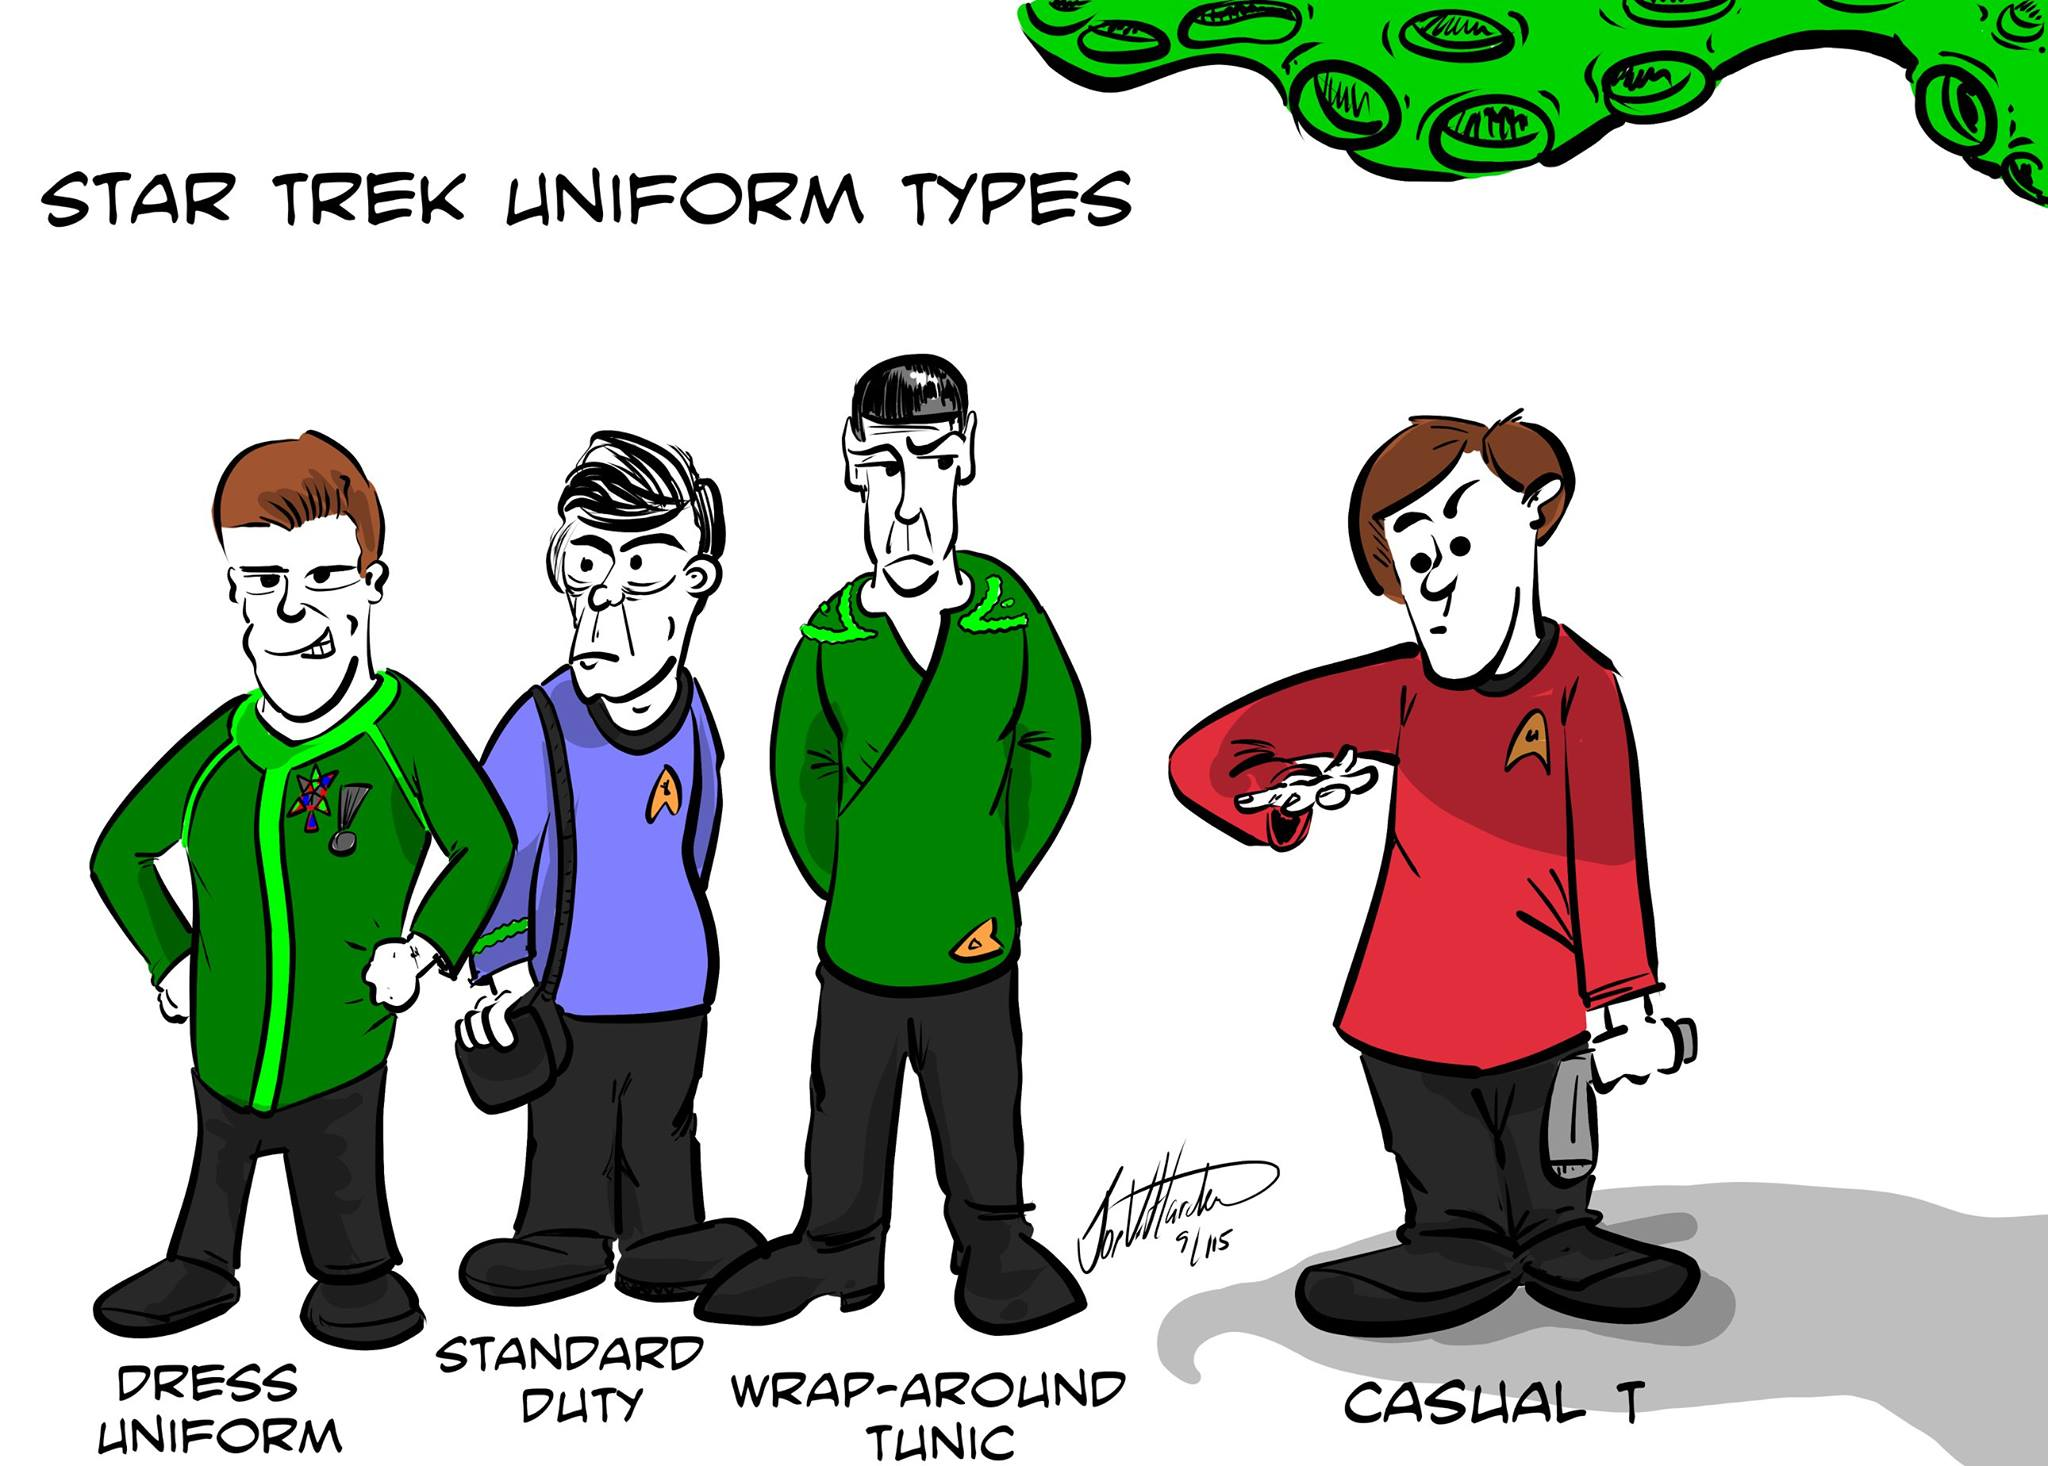 Star Trek Uniform Types